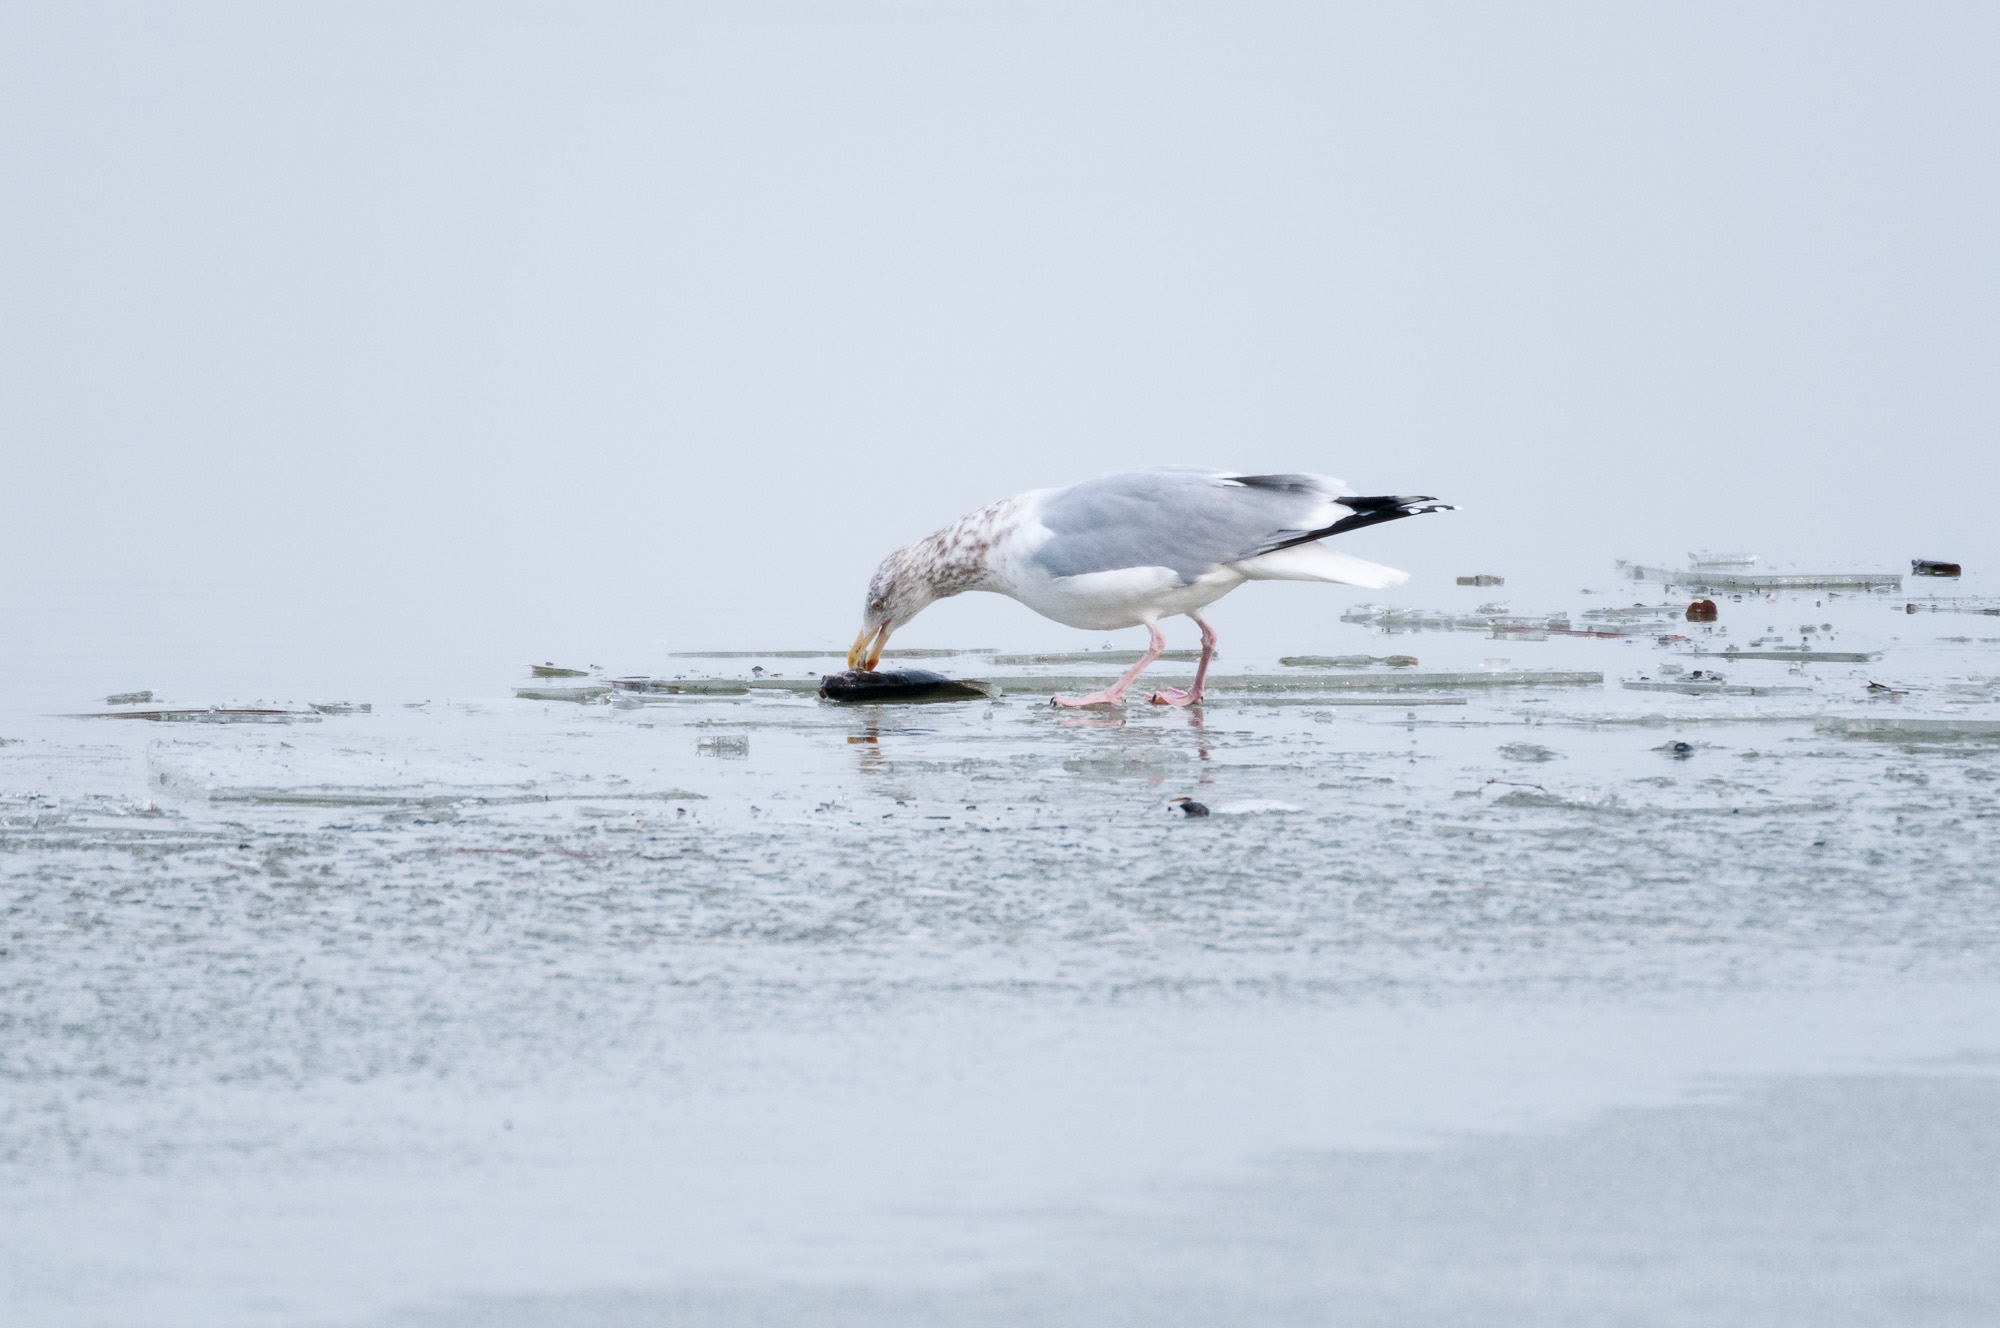 Herring Gull eating a fish on ice covered river. Notice the gray back, black wing tips, and white tail.